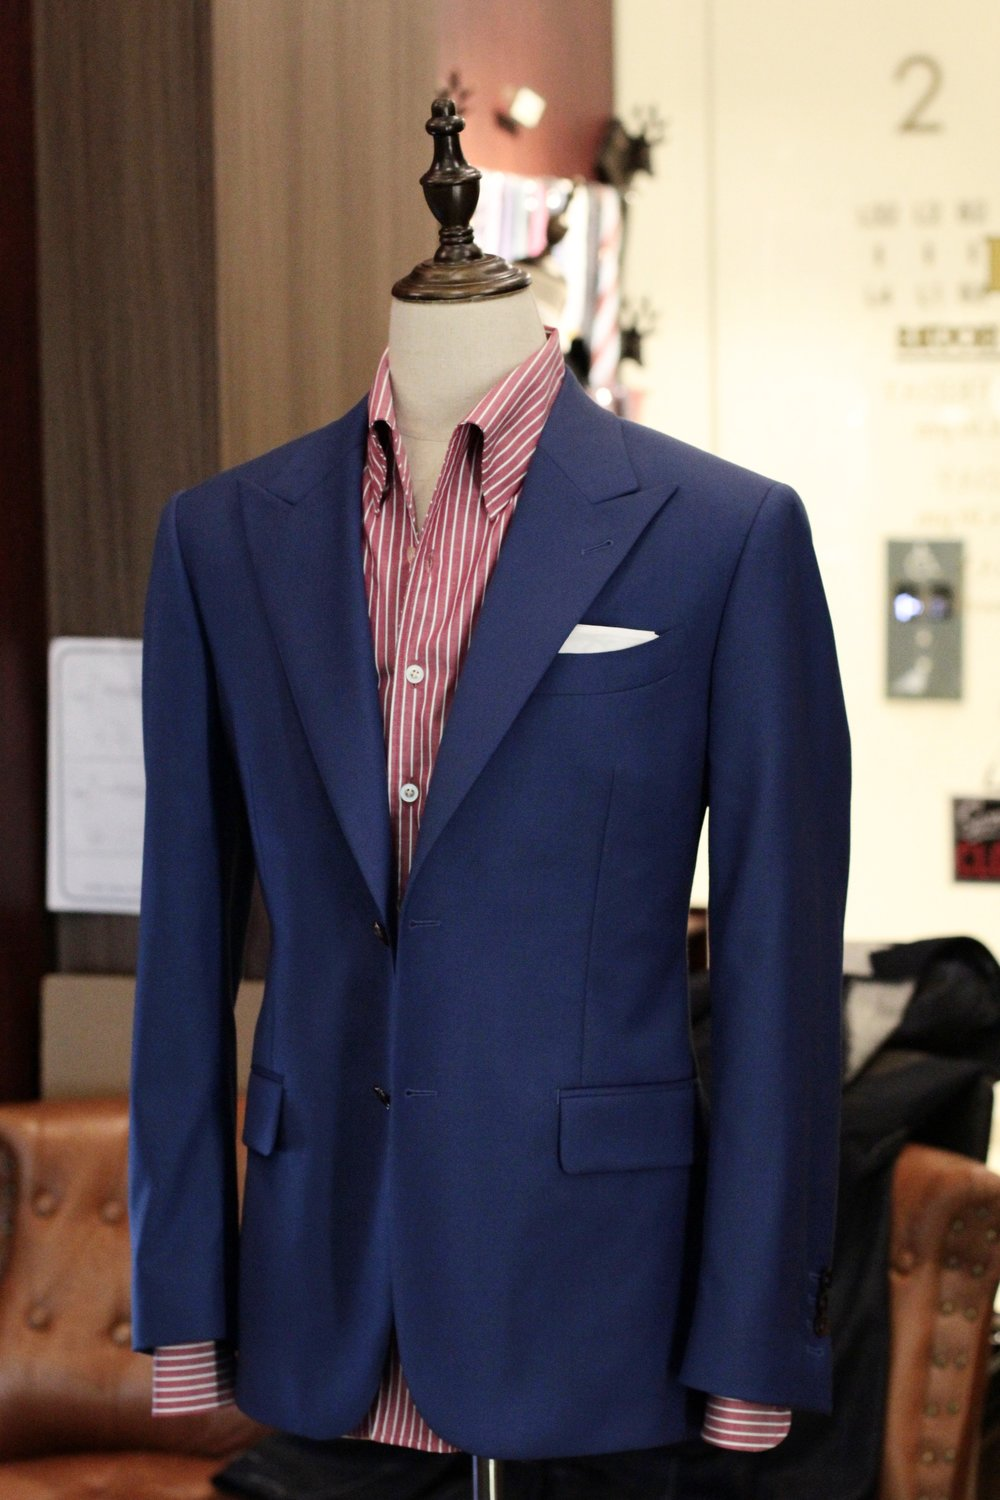 Mr Smarty | Tailor Made Suits | Made to Measure Dino Filarte view.JPG